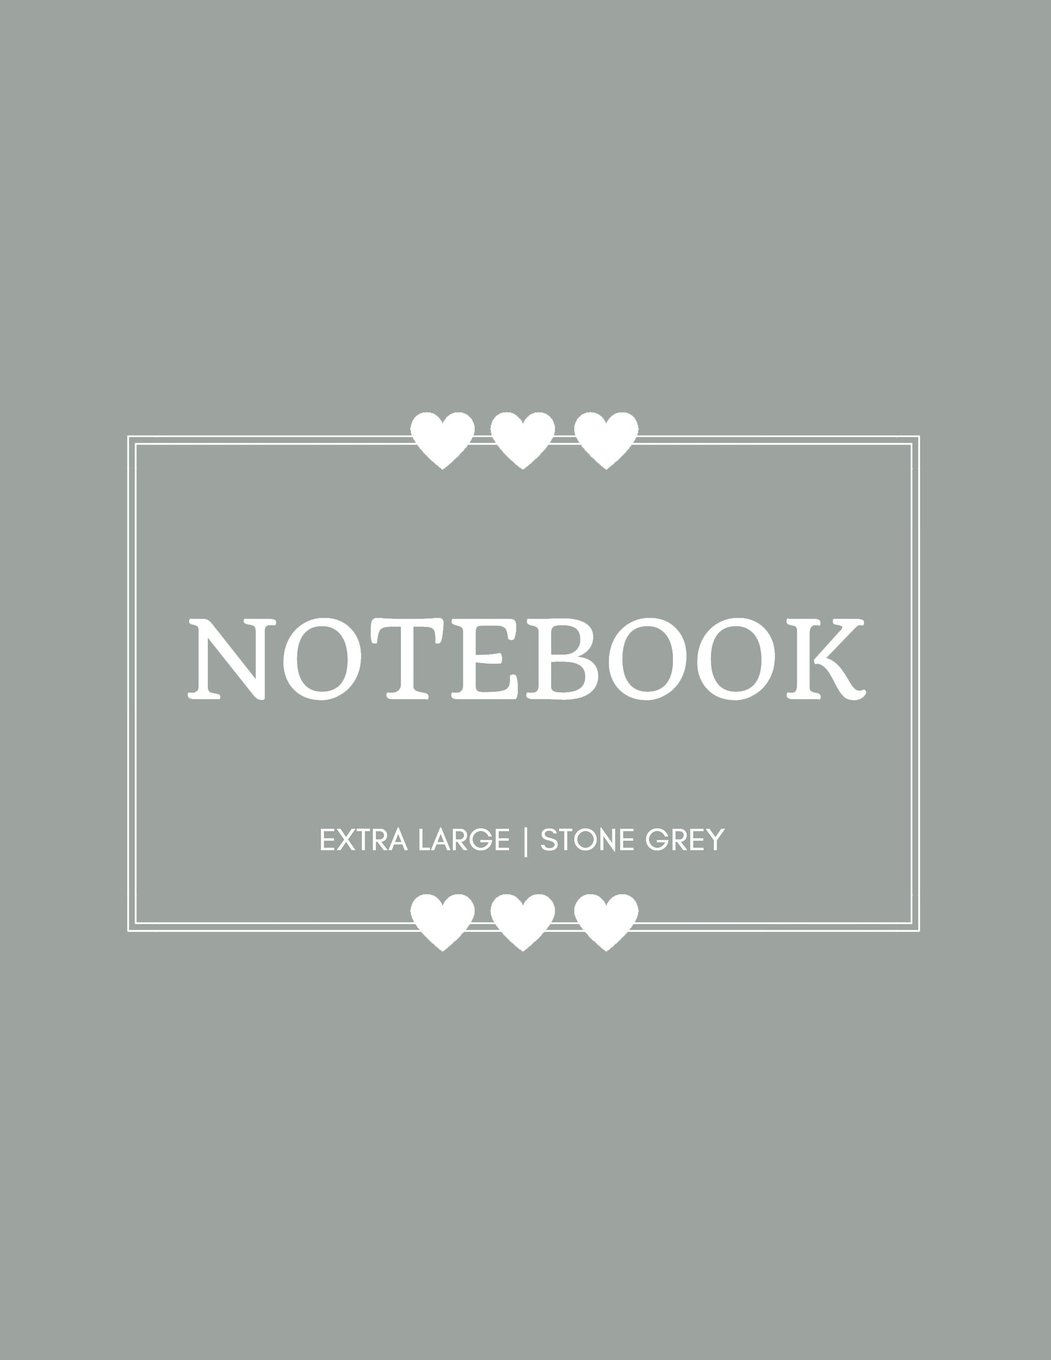 Notebook Extra Large: Stone Grey: Notebook 8.5 x 11: Notebook 400 Pages ebook